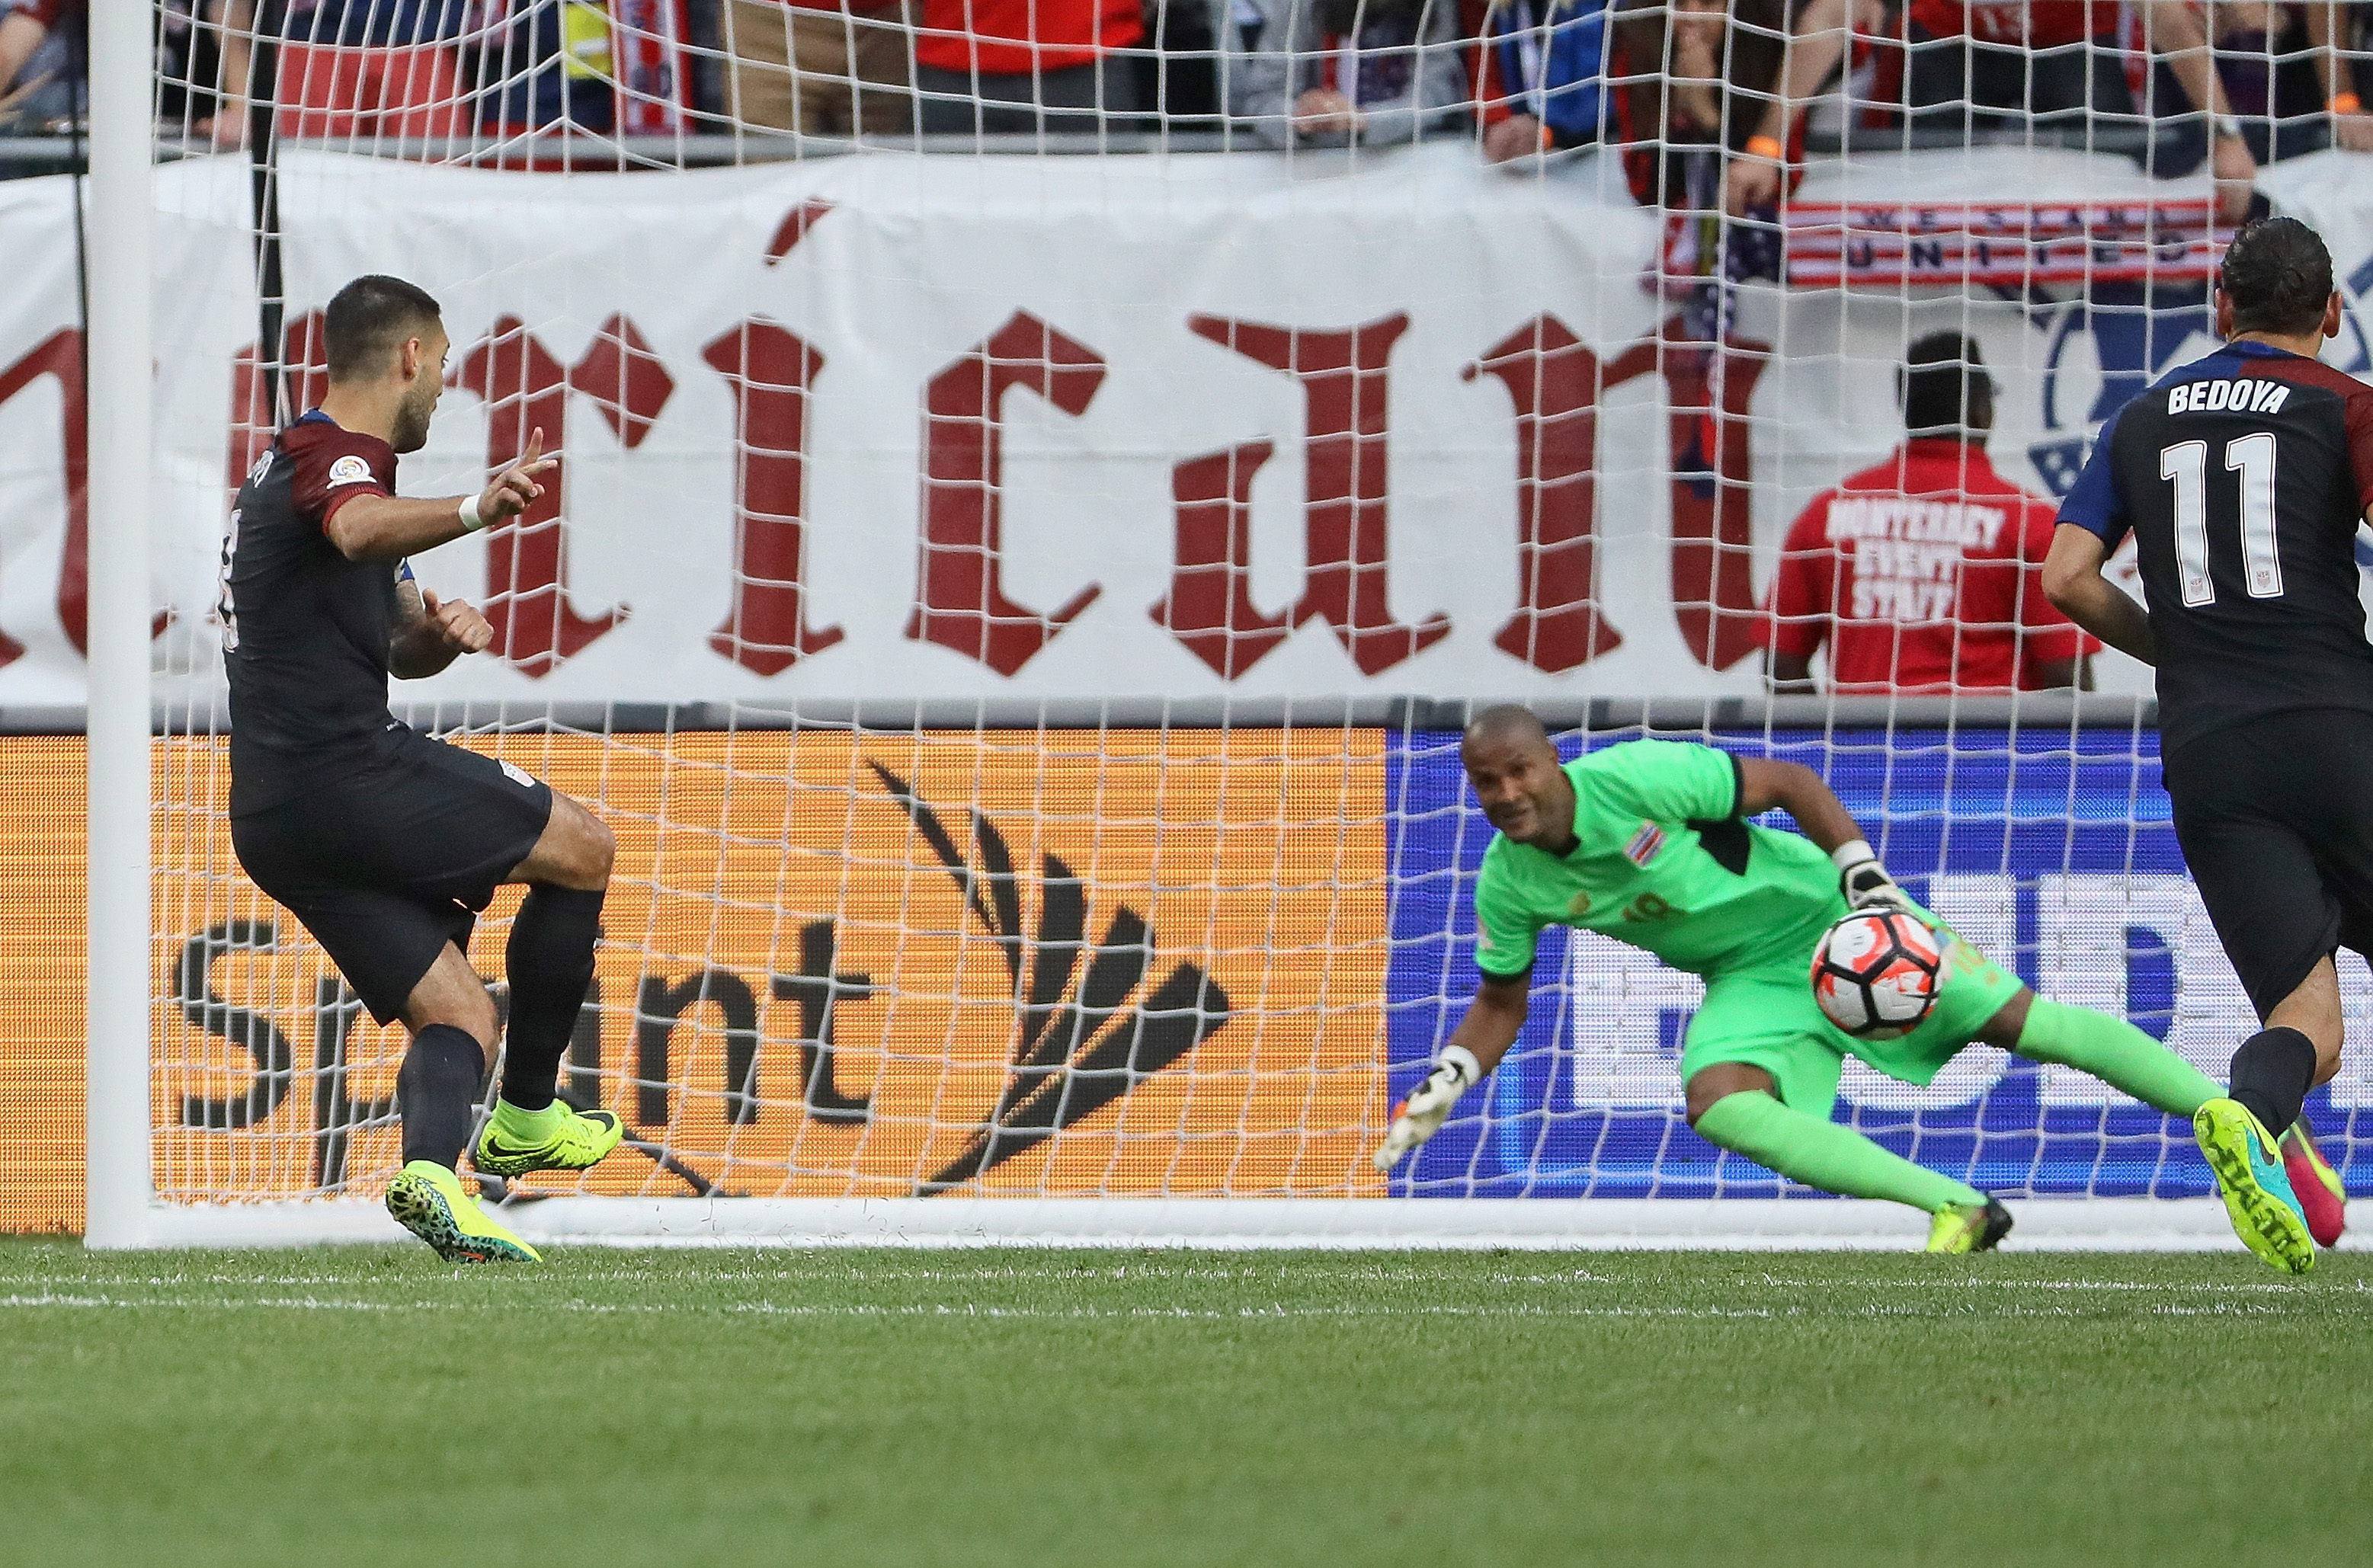 If the USMNT match is tied, it goes straight to penalty kicks and the Americans are ready